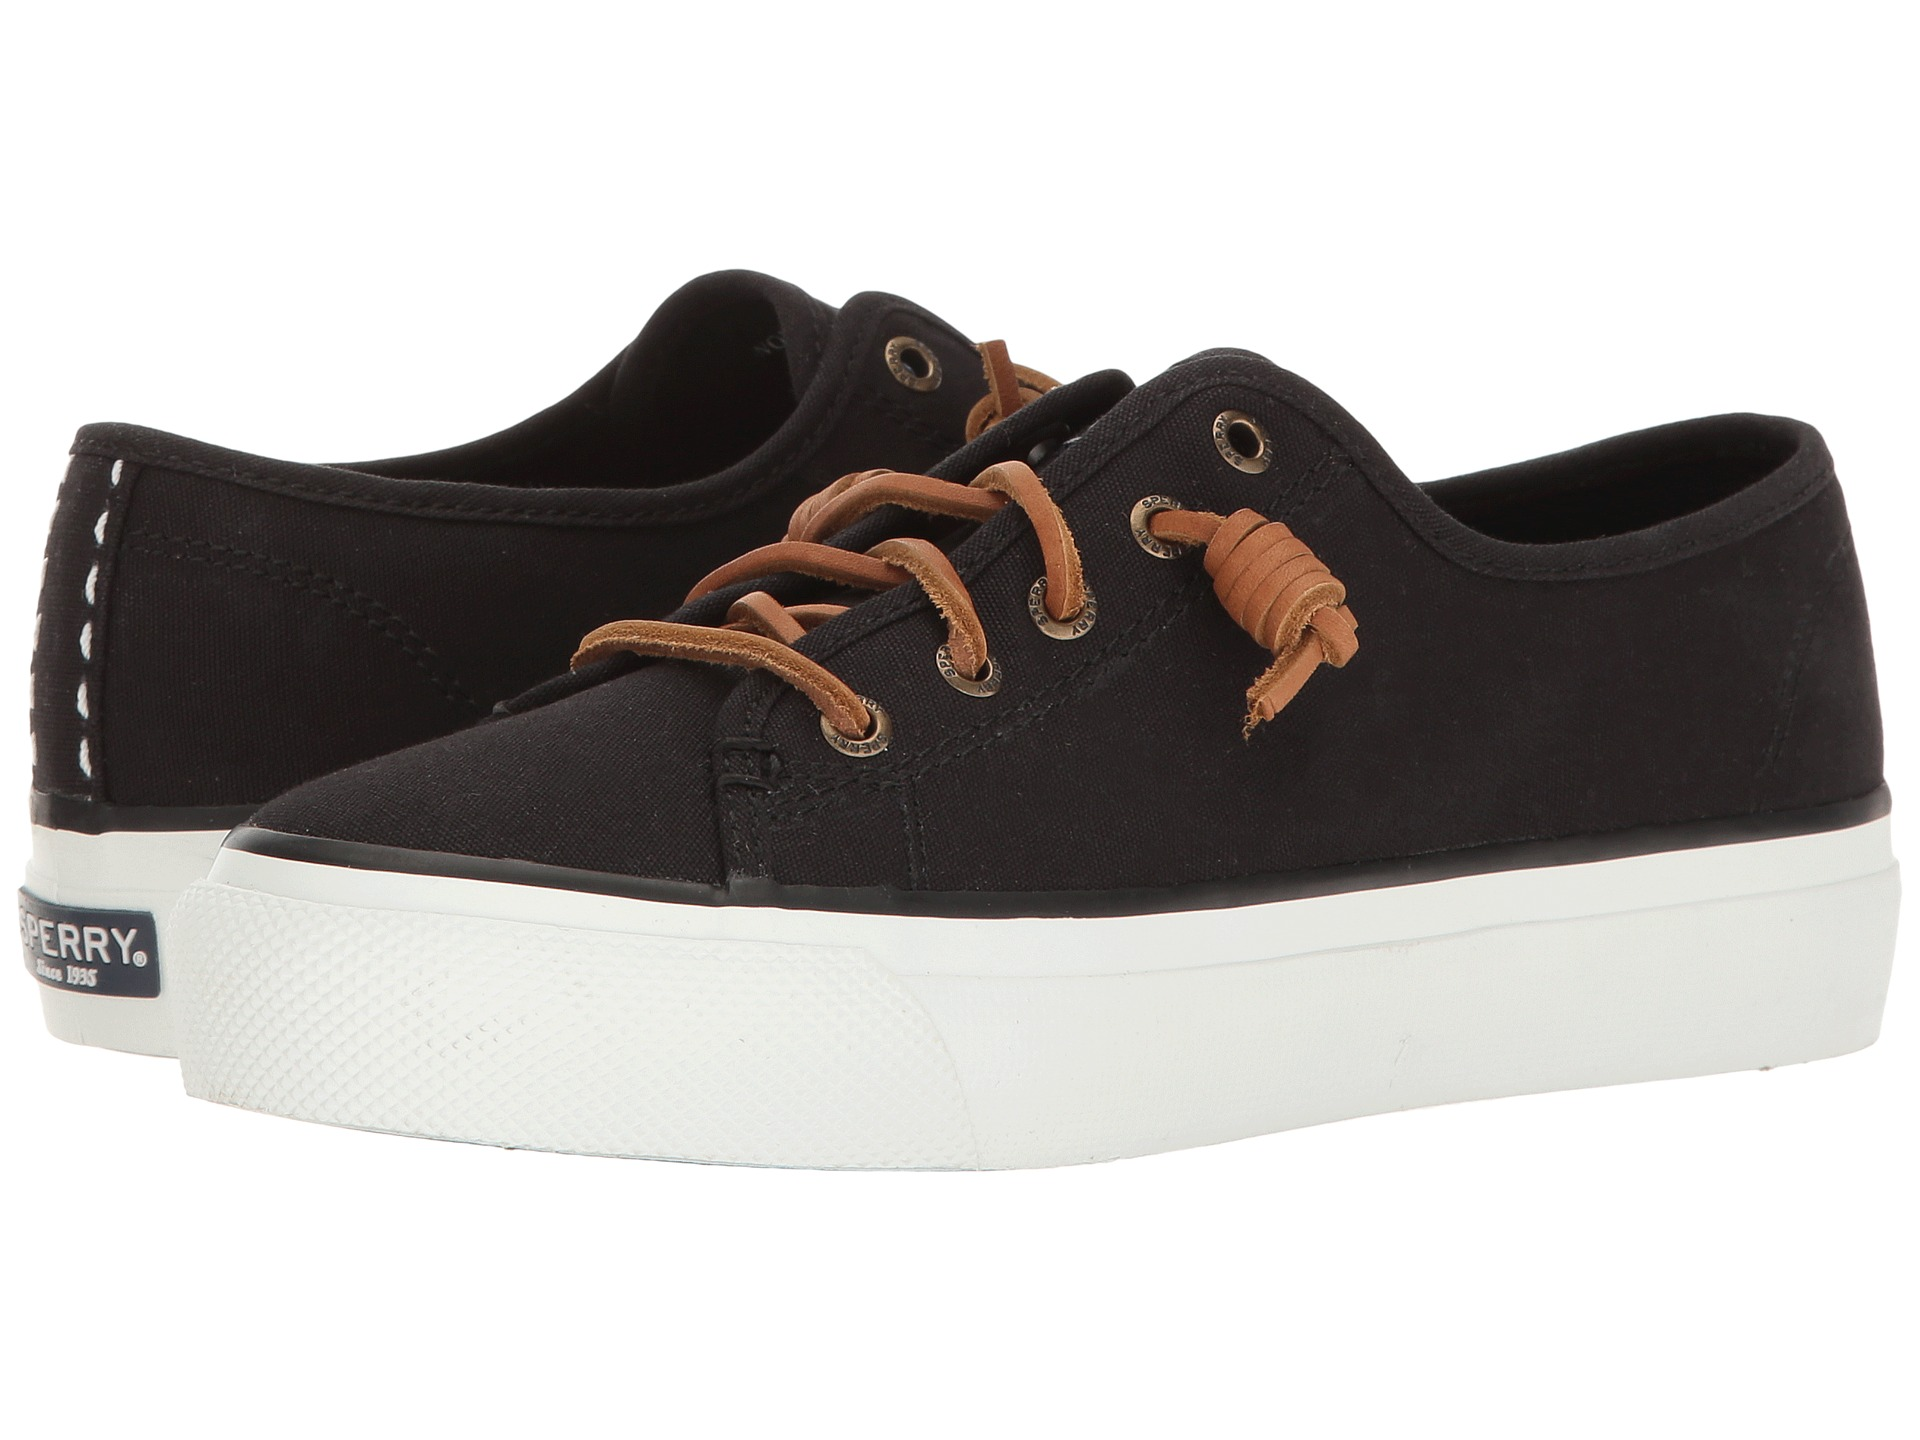 sperry sky sail canvas at zappos